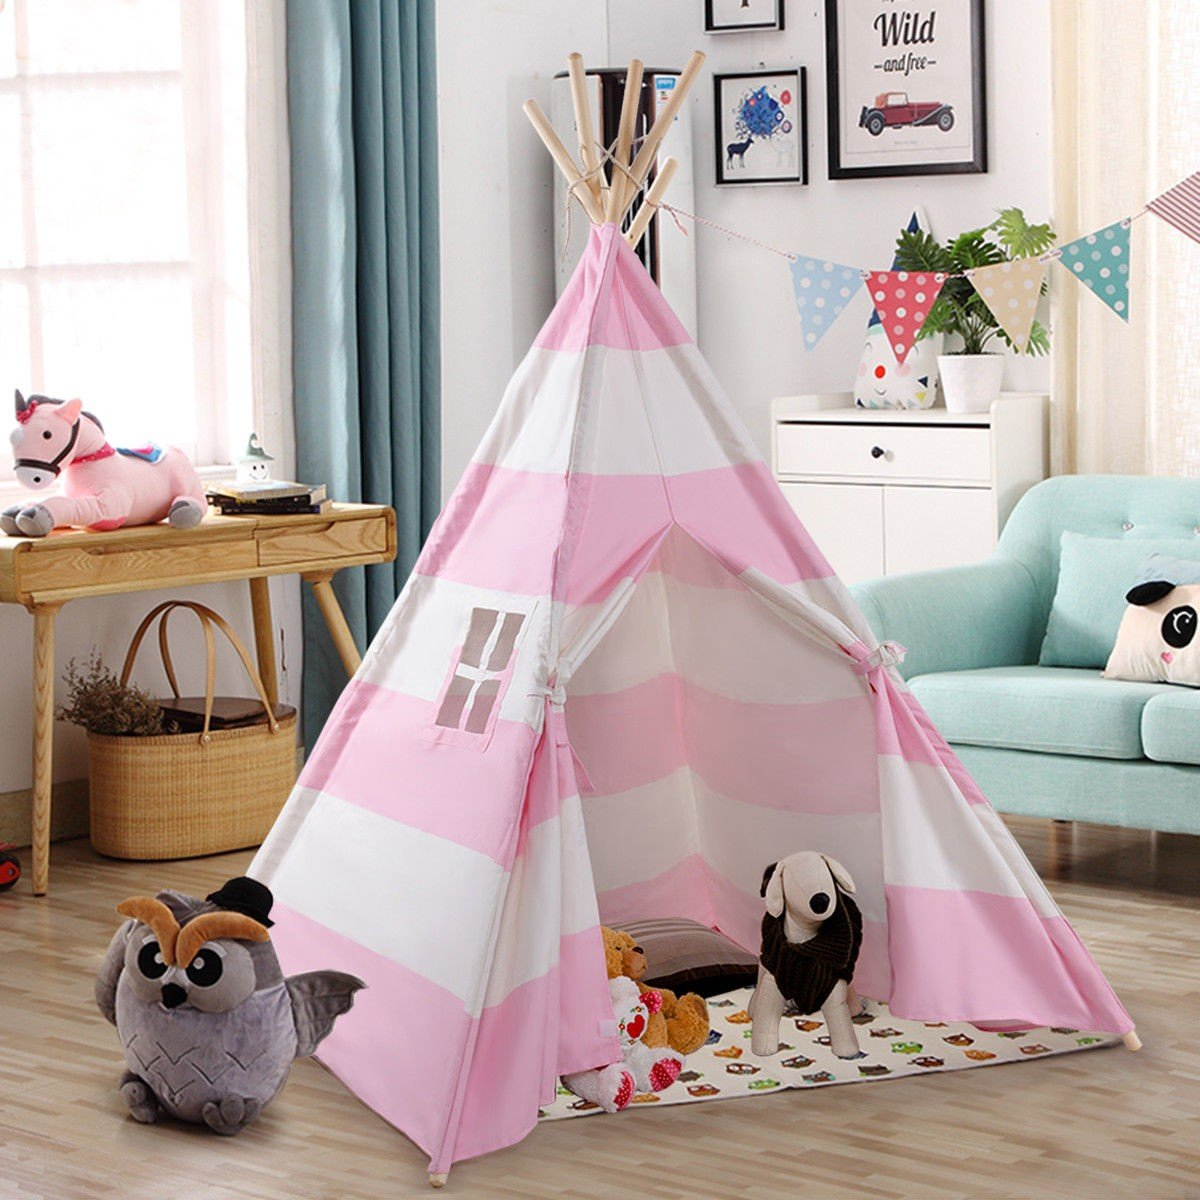 COSTWAY Kids Indian Play Tent Teepee Children Girl Boy Play House Sleeping Dome Bag Pink + FREE E - Book Only By eight24hours by COSTWAY (Image #6)